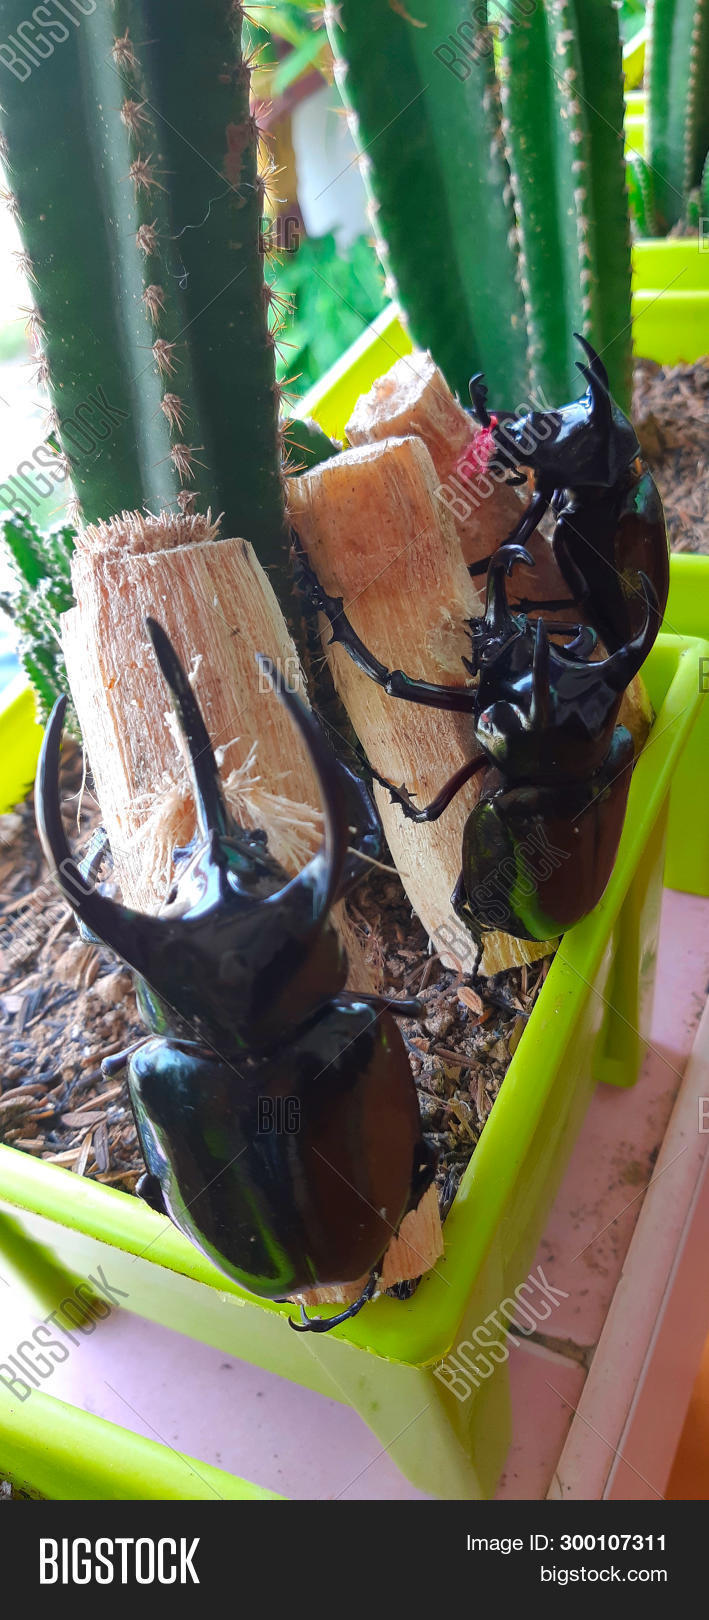 adult,asia,atlas,background,beetle,biological,cephalic,chalcosoma,eating,ecological,environmental,fresh,green,healthy,horn,insecta,leaf,live,male,natural,nature,plant,scarabaeidae,southeast,species,sugarcane